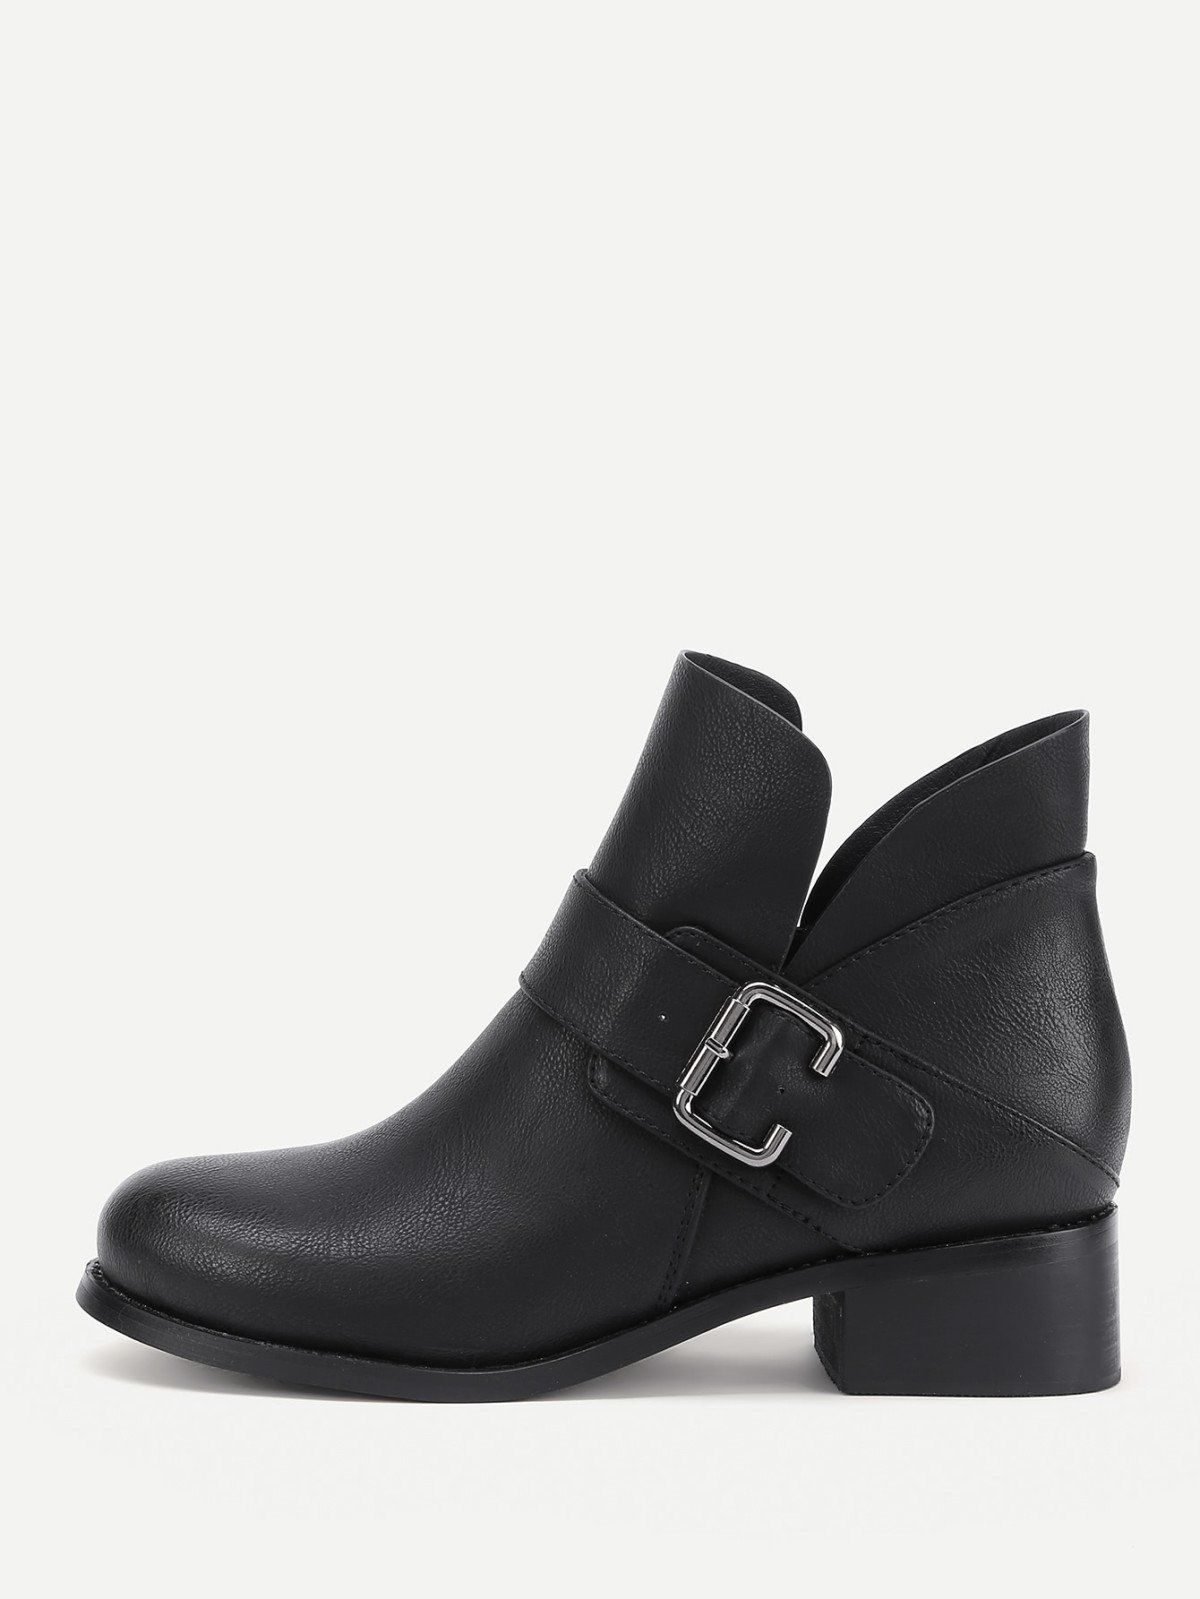 e7ae58e4cbccb Boots by BORNTOWEAR. Side Buckle Decorated Pu Ankle Boots